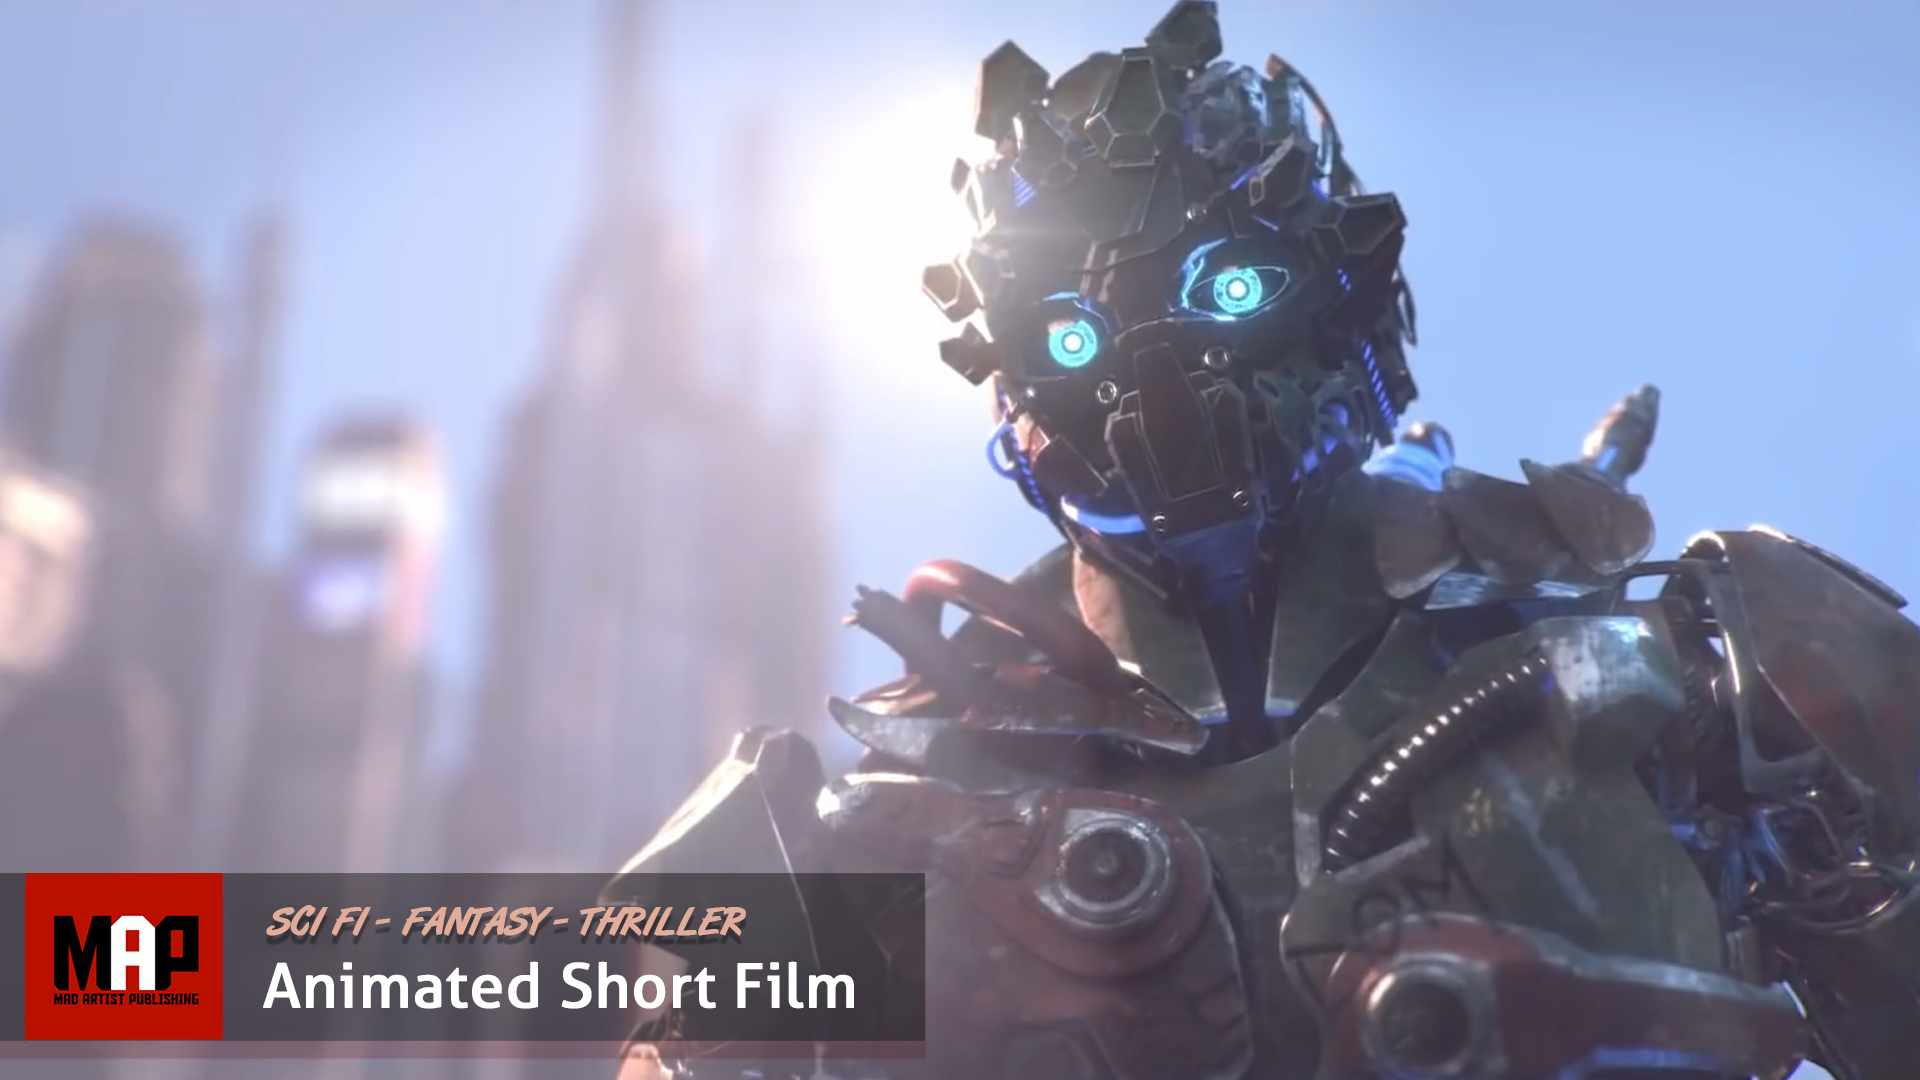 CGI VFX Animated Short Film ** CROSSBREED ** SciFi Thriller by Objectif3d Team